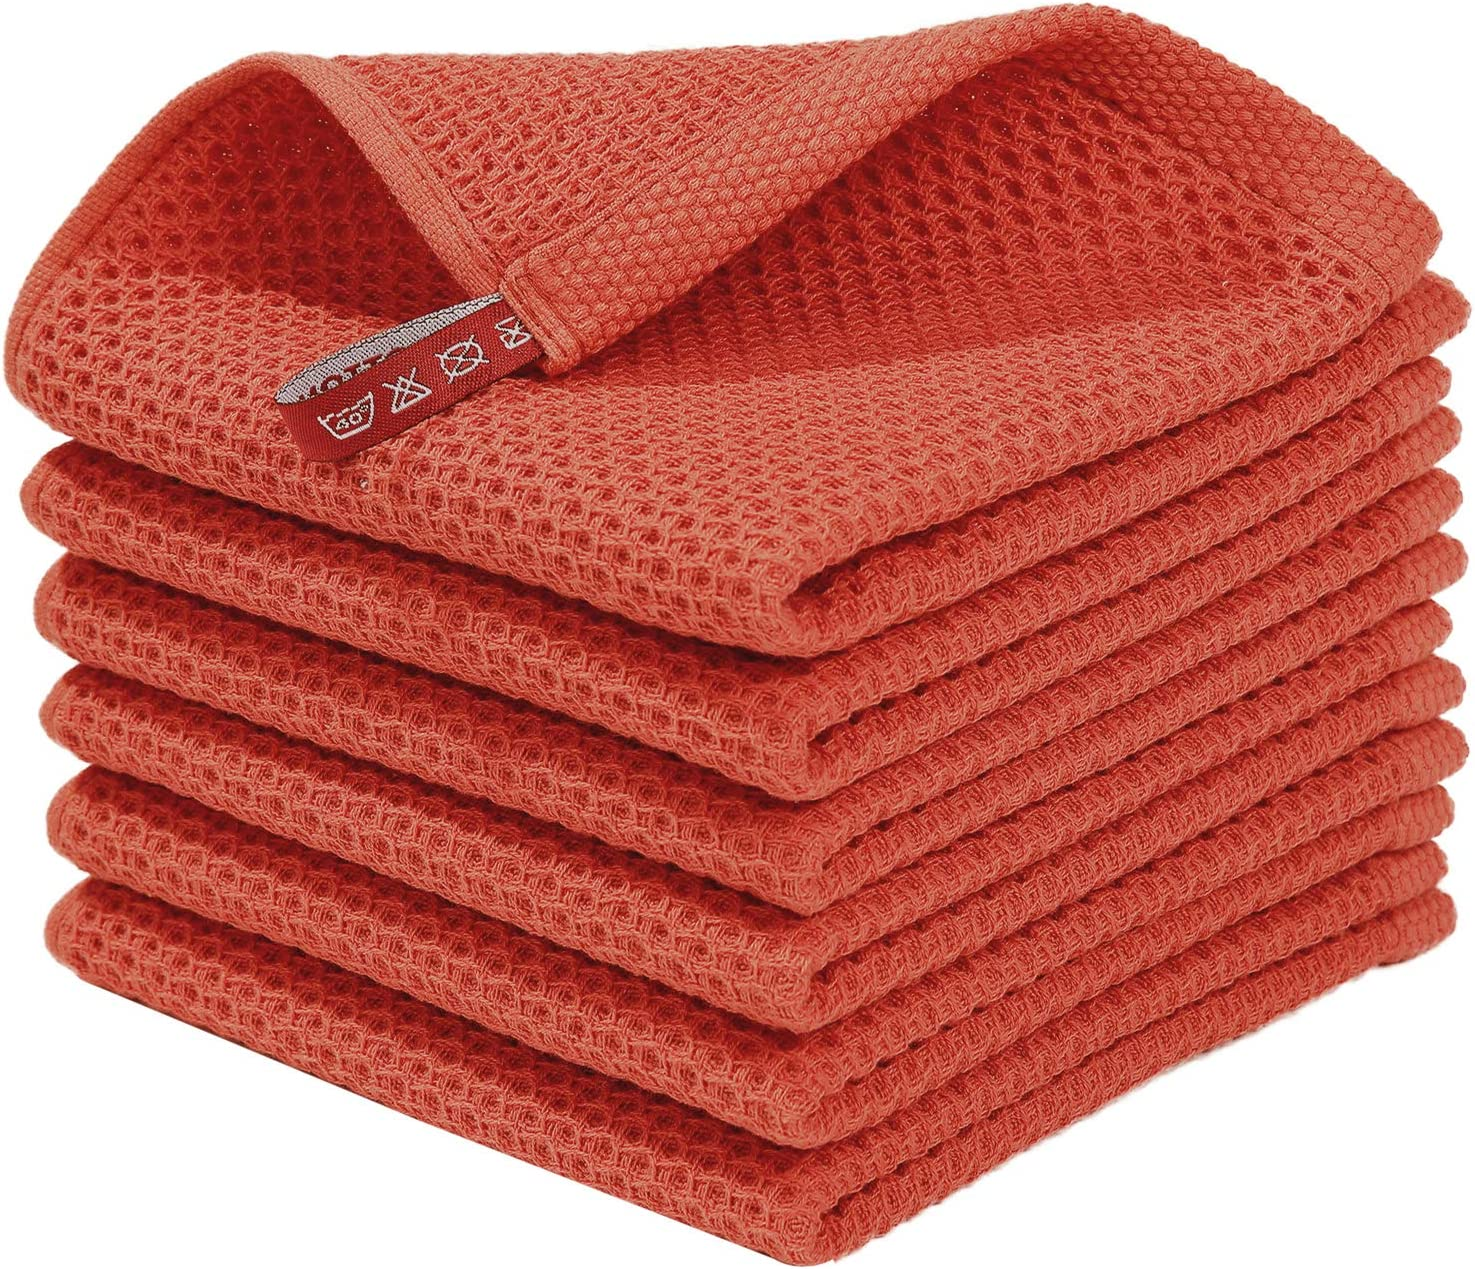 Homaxy 100% Cotton Waffle Weave Kitchen Dish Cloths, Ultra Soft Absorbent Quick Drying Dish Towels, 12x12 Inches, 6-Pack, Brick Red